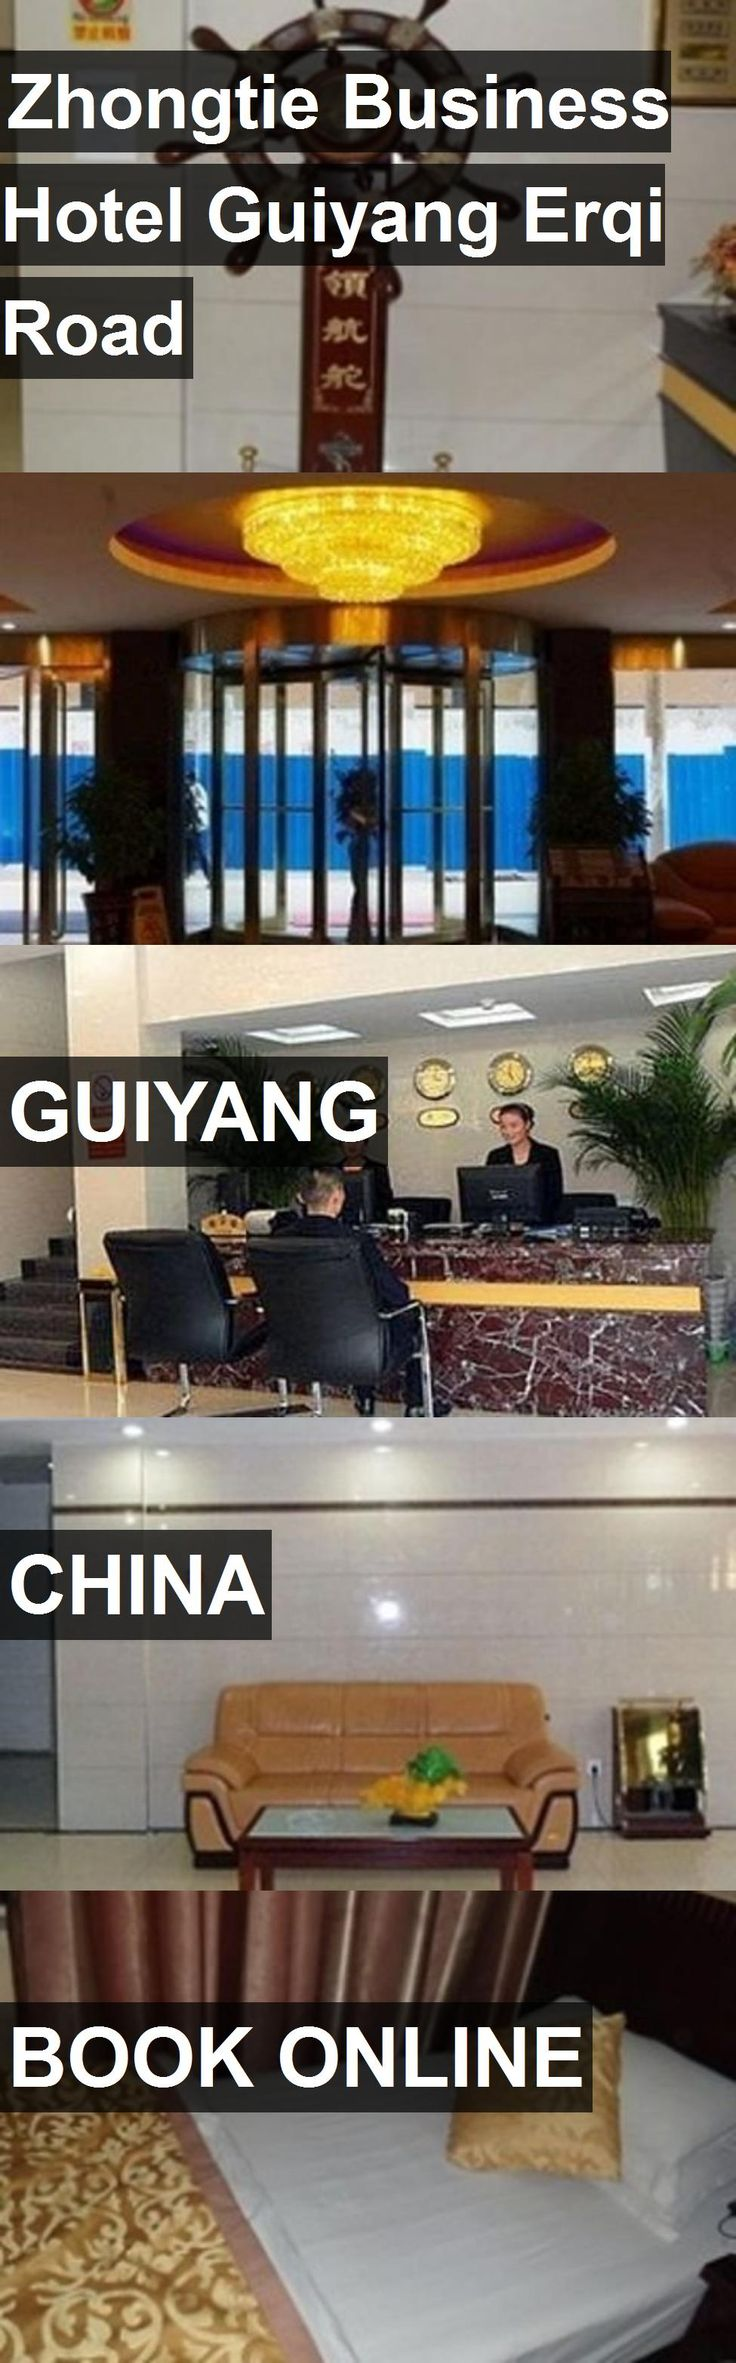 Zhongtie Business Hotel Guiyang Erqi Road in Guiyang, China. For more information, photos, reviews and best prices please follow the link. #China #Guiyang #travel #vacation #hotel